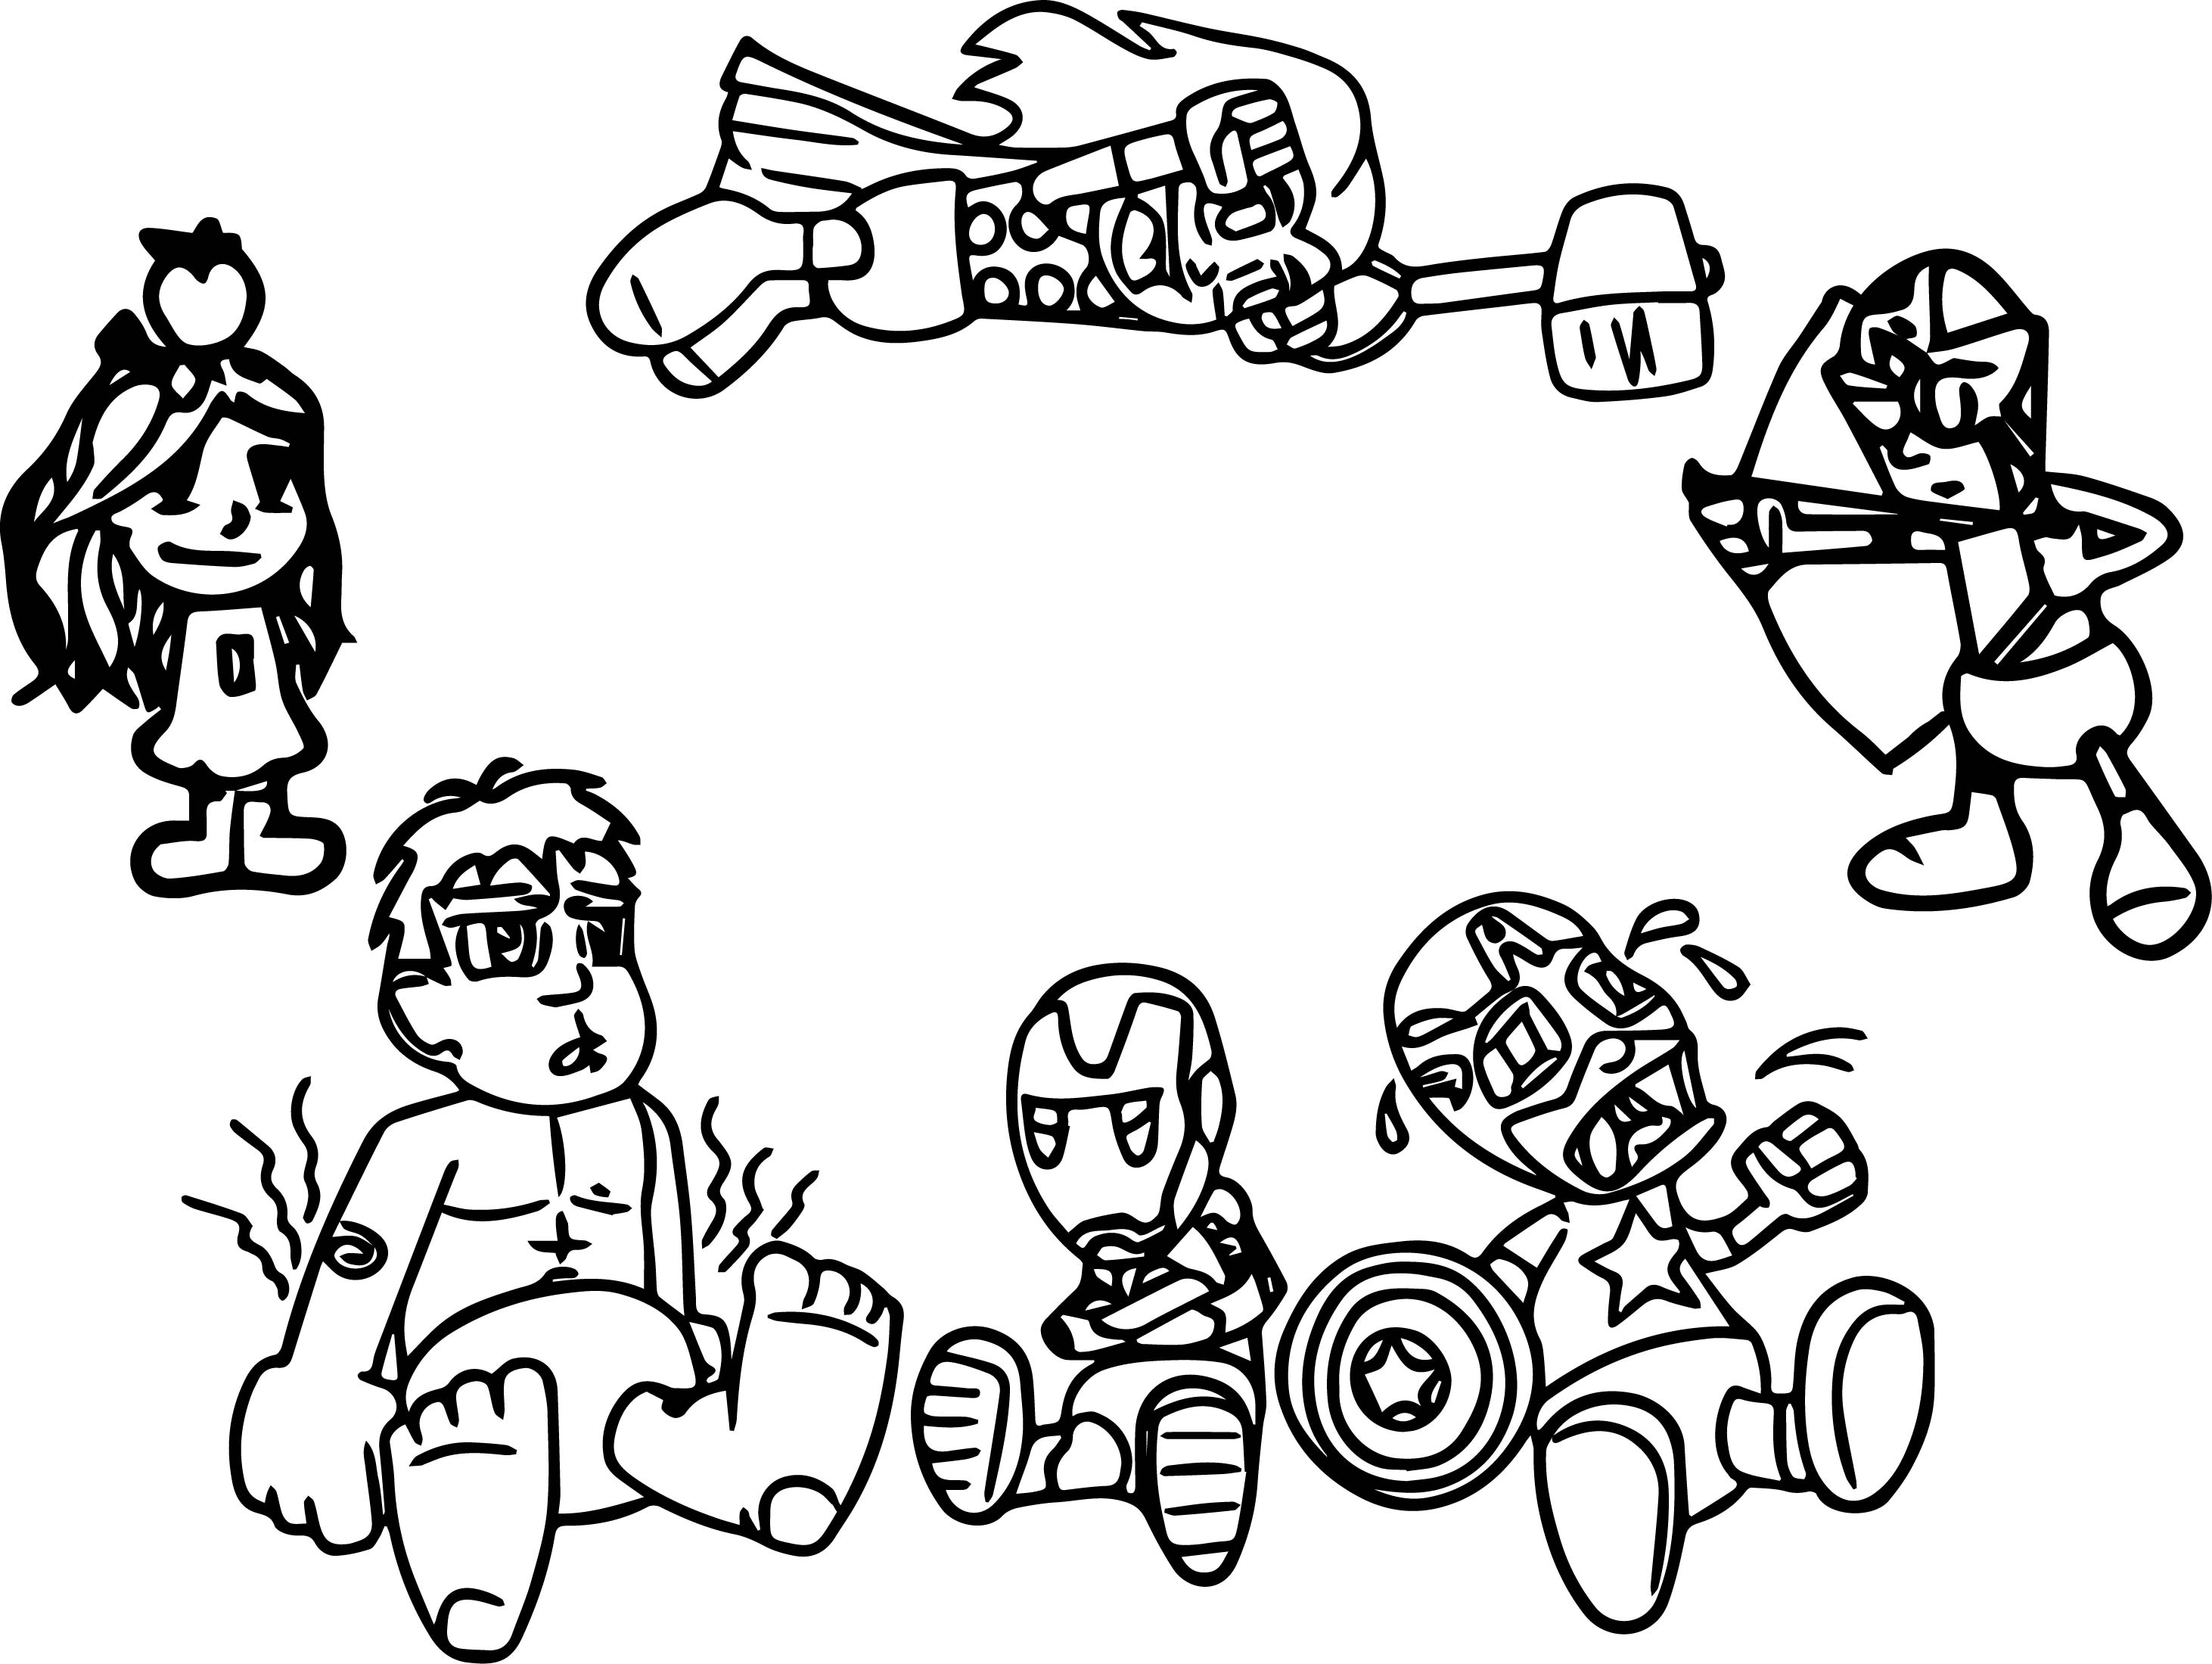 Avenger Babies Cartoon Coloring